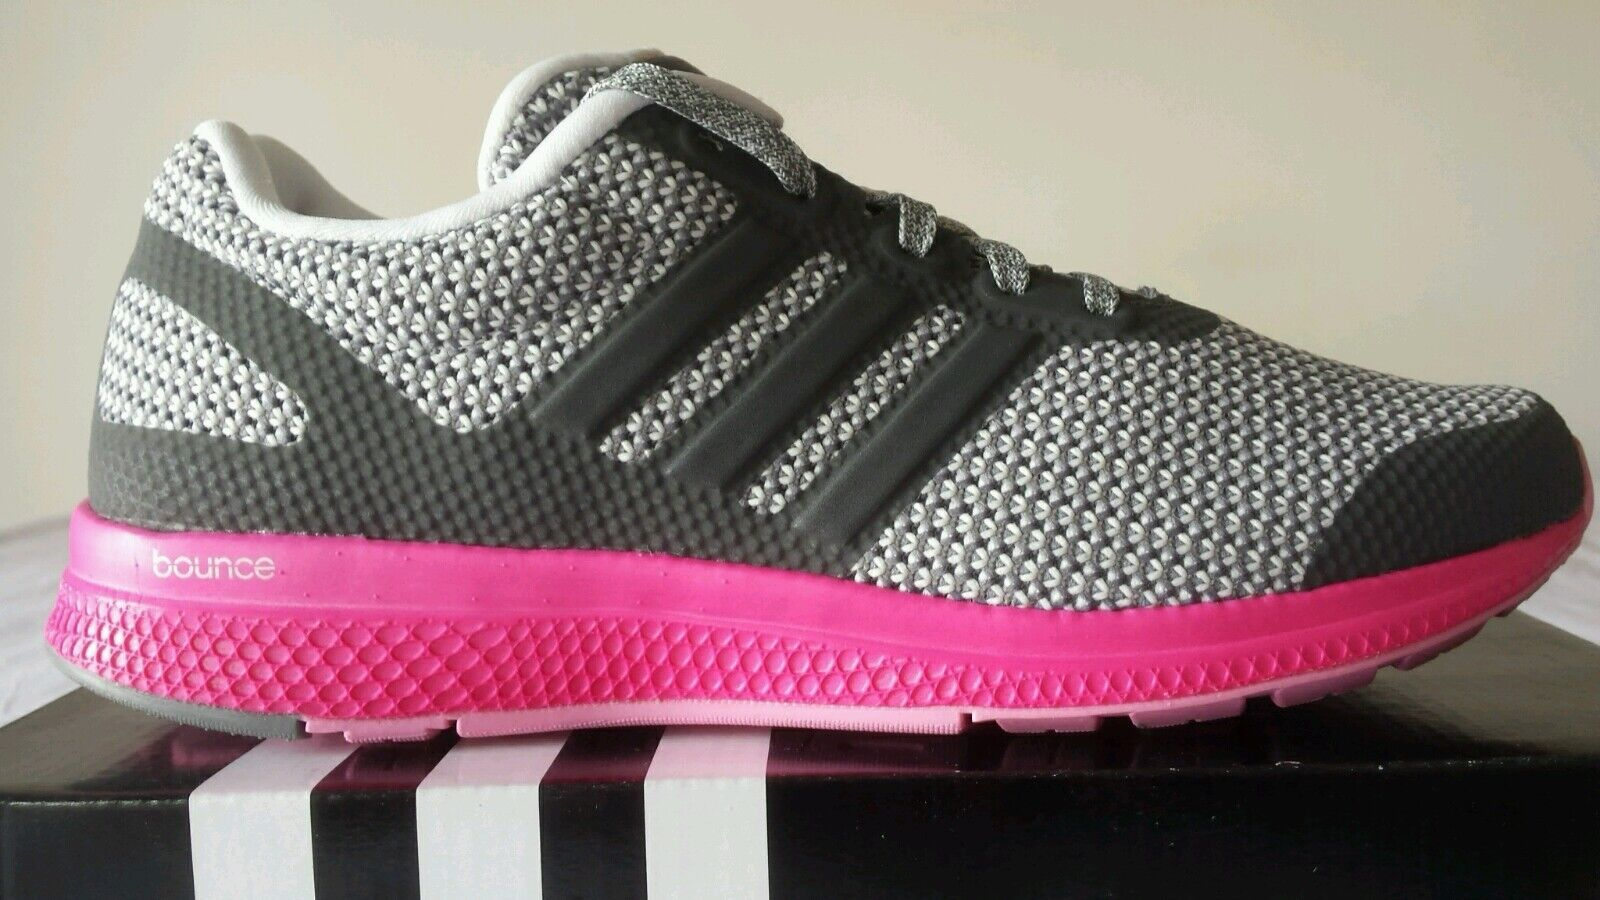 ADIDAS TRAINER MANA BOUNCE GRIGIA FUXIA N.39 1/3 NEW MODEL OKKSPORT NIKE 97